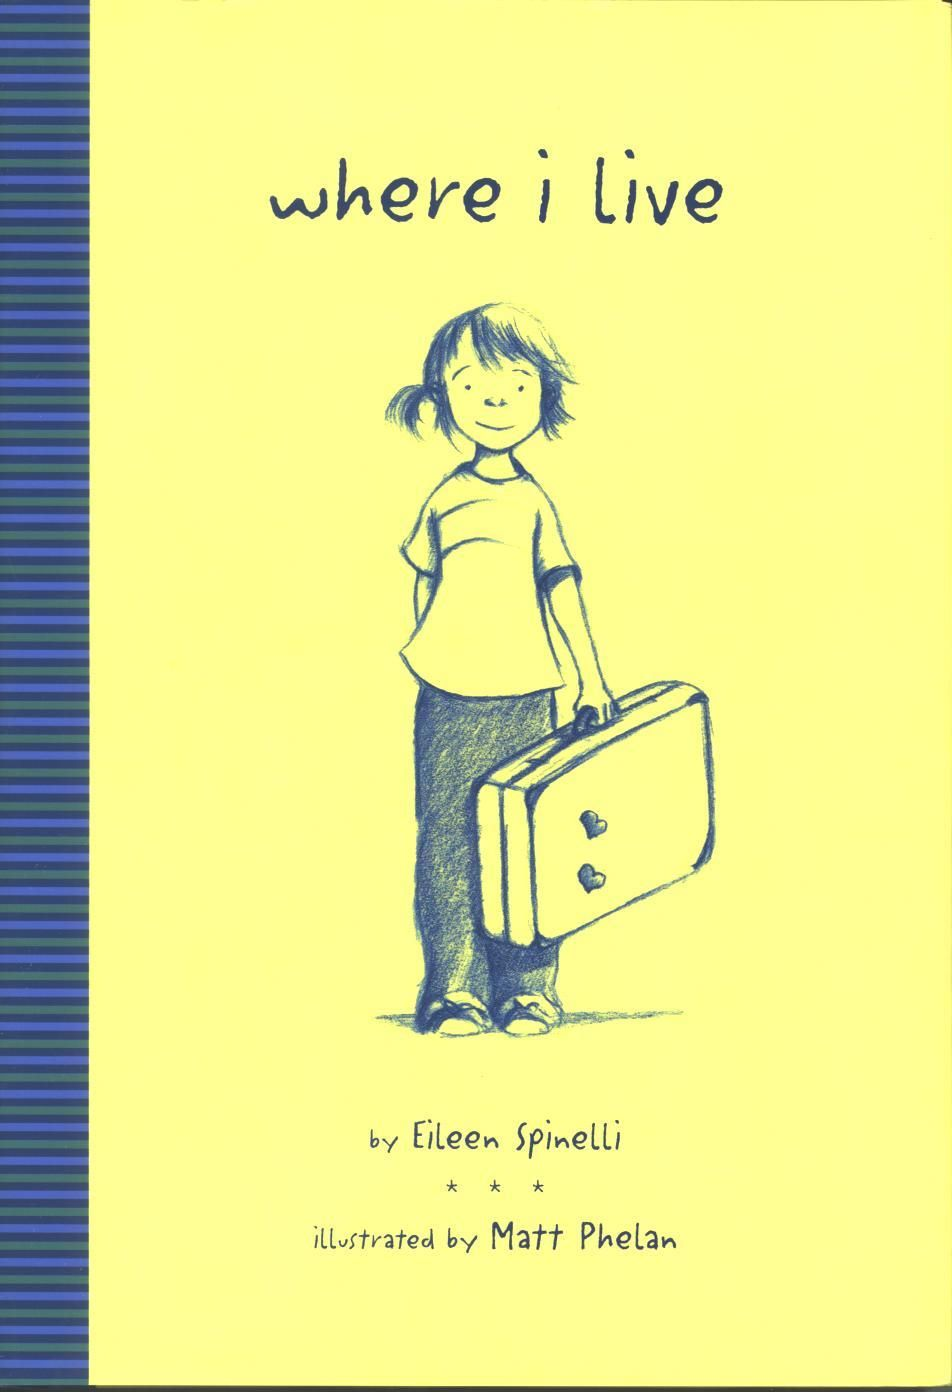 Where i live by eileen spinelli a story in poems for young readers where i live by eileen spinelli a story in poems for young readers whats fandeluxe Choice Image